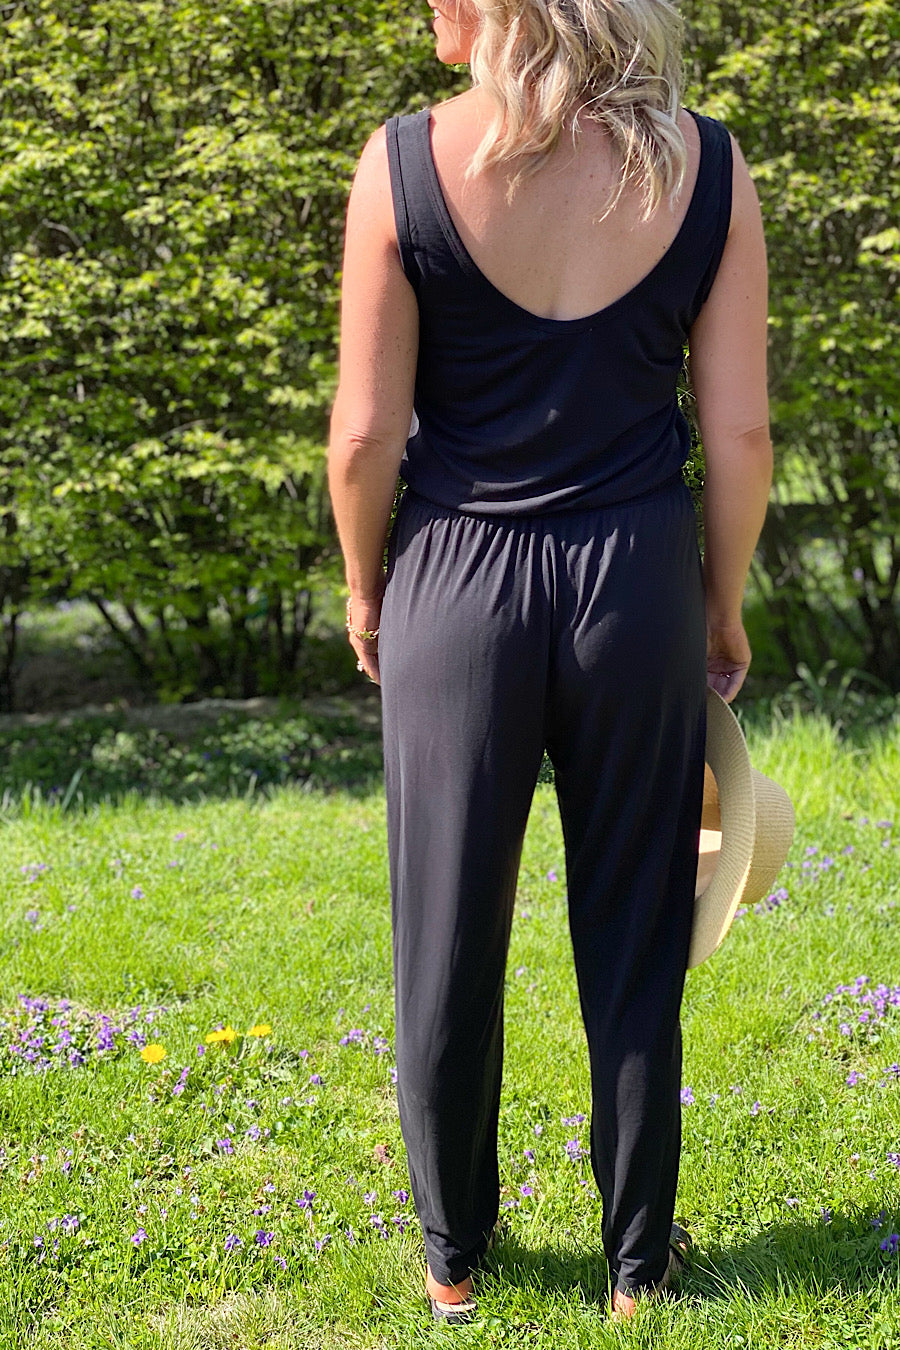 Incognito Black Sleeveless Jumpsuit